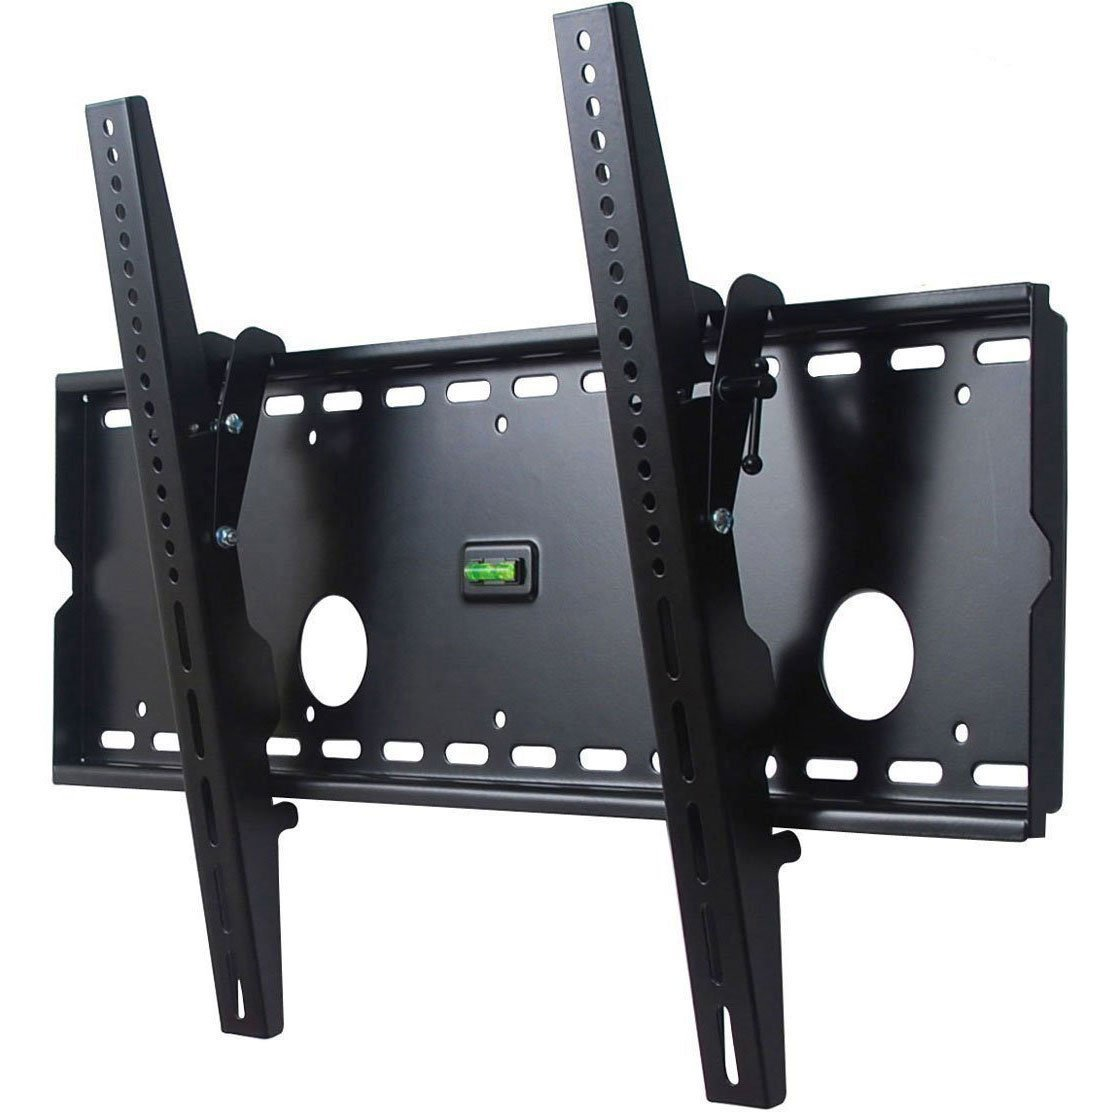 VideoSecu Black Low Profile TV Wall Mount Bracket for Sharp LC-42D43U LCD 42 inch HDTV TV M80 new universal adjustable tilt tilting tv wall mount bracket for samsung lcd led plasma max 165 lbs 23 37inch